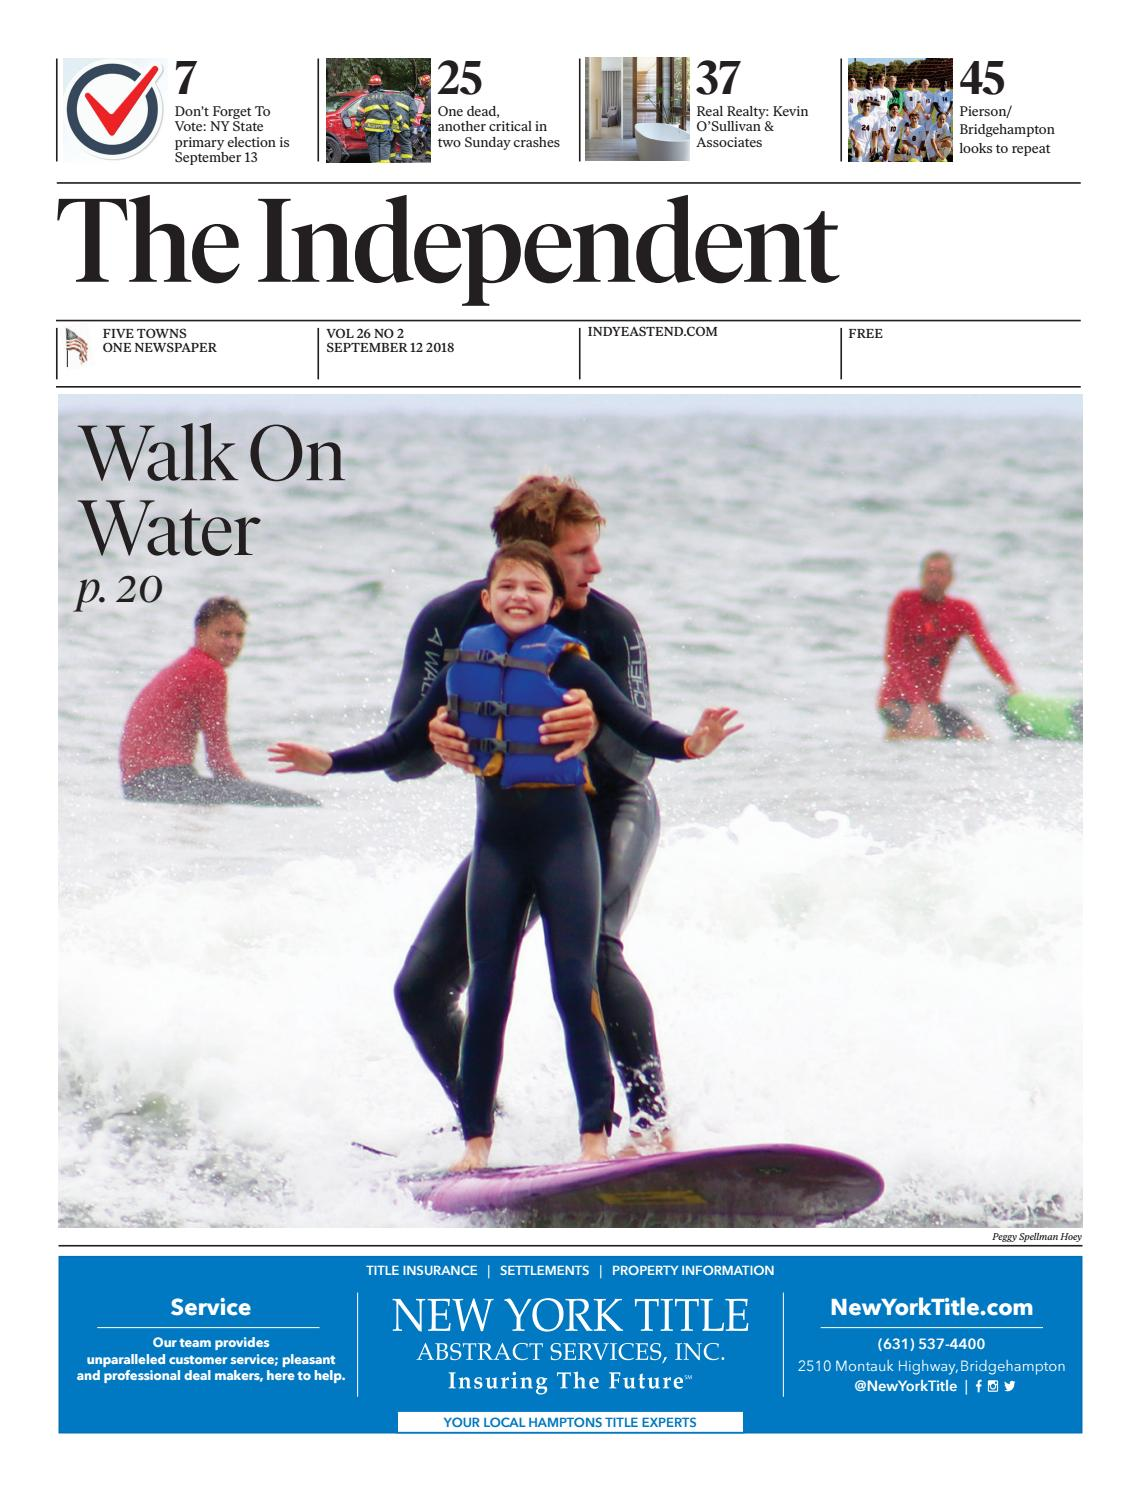 9bdfabd6 The Independent by The Independent Newspaper - issuu